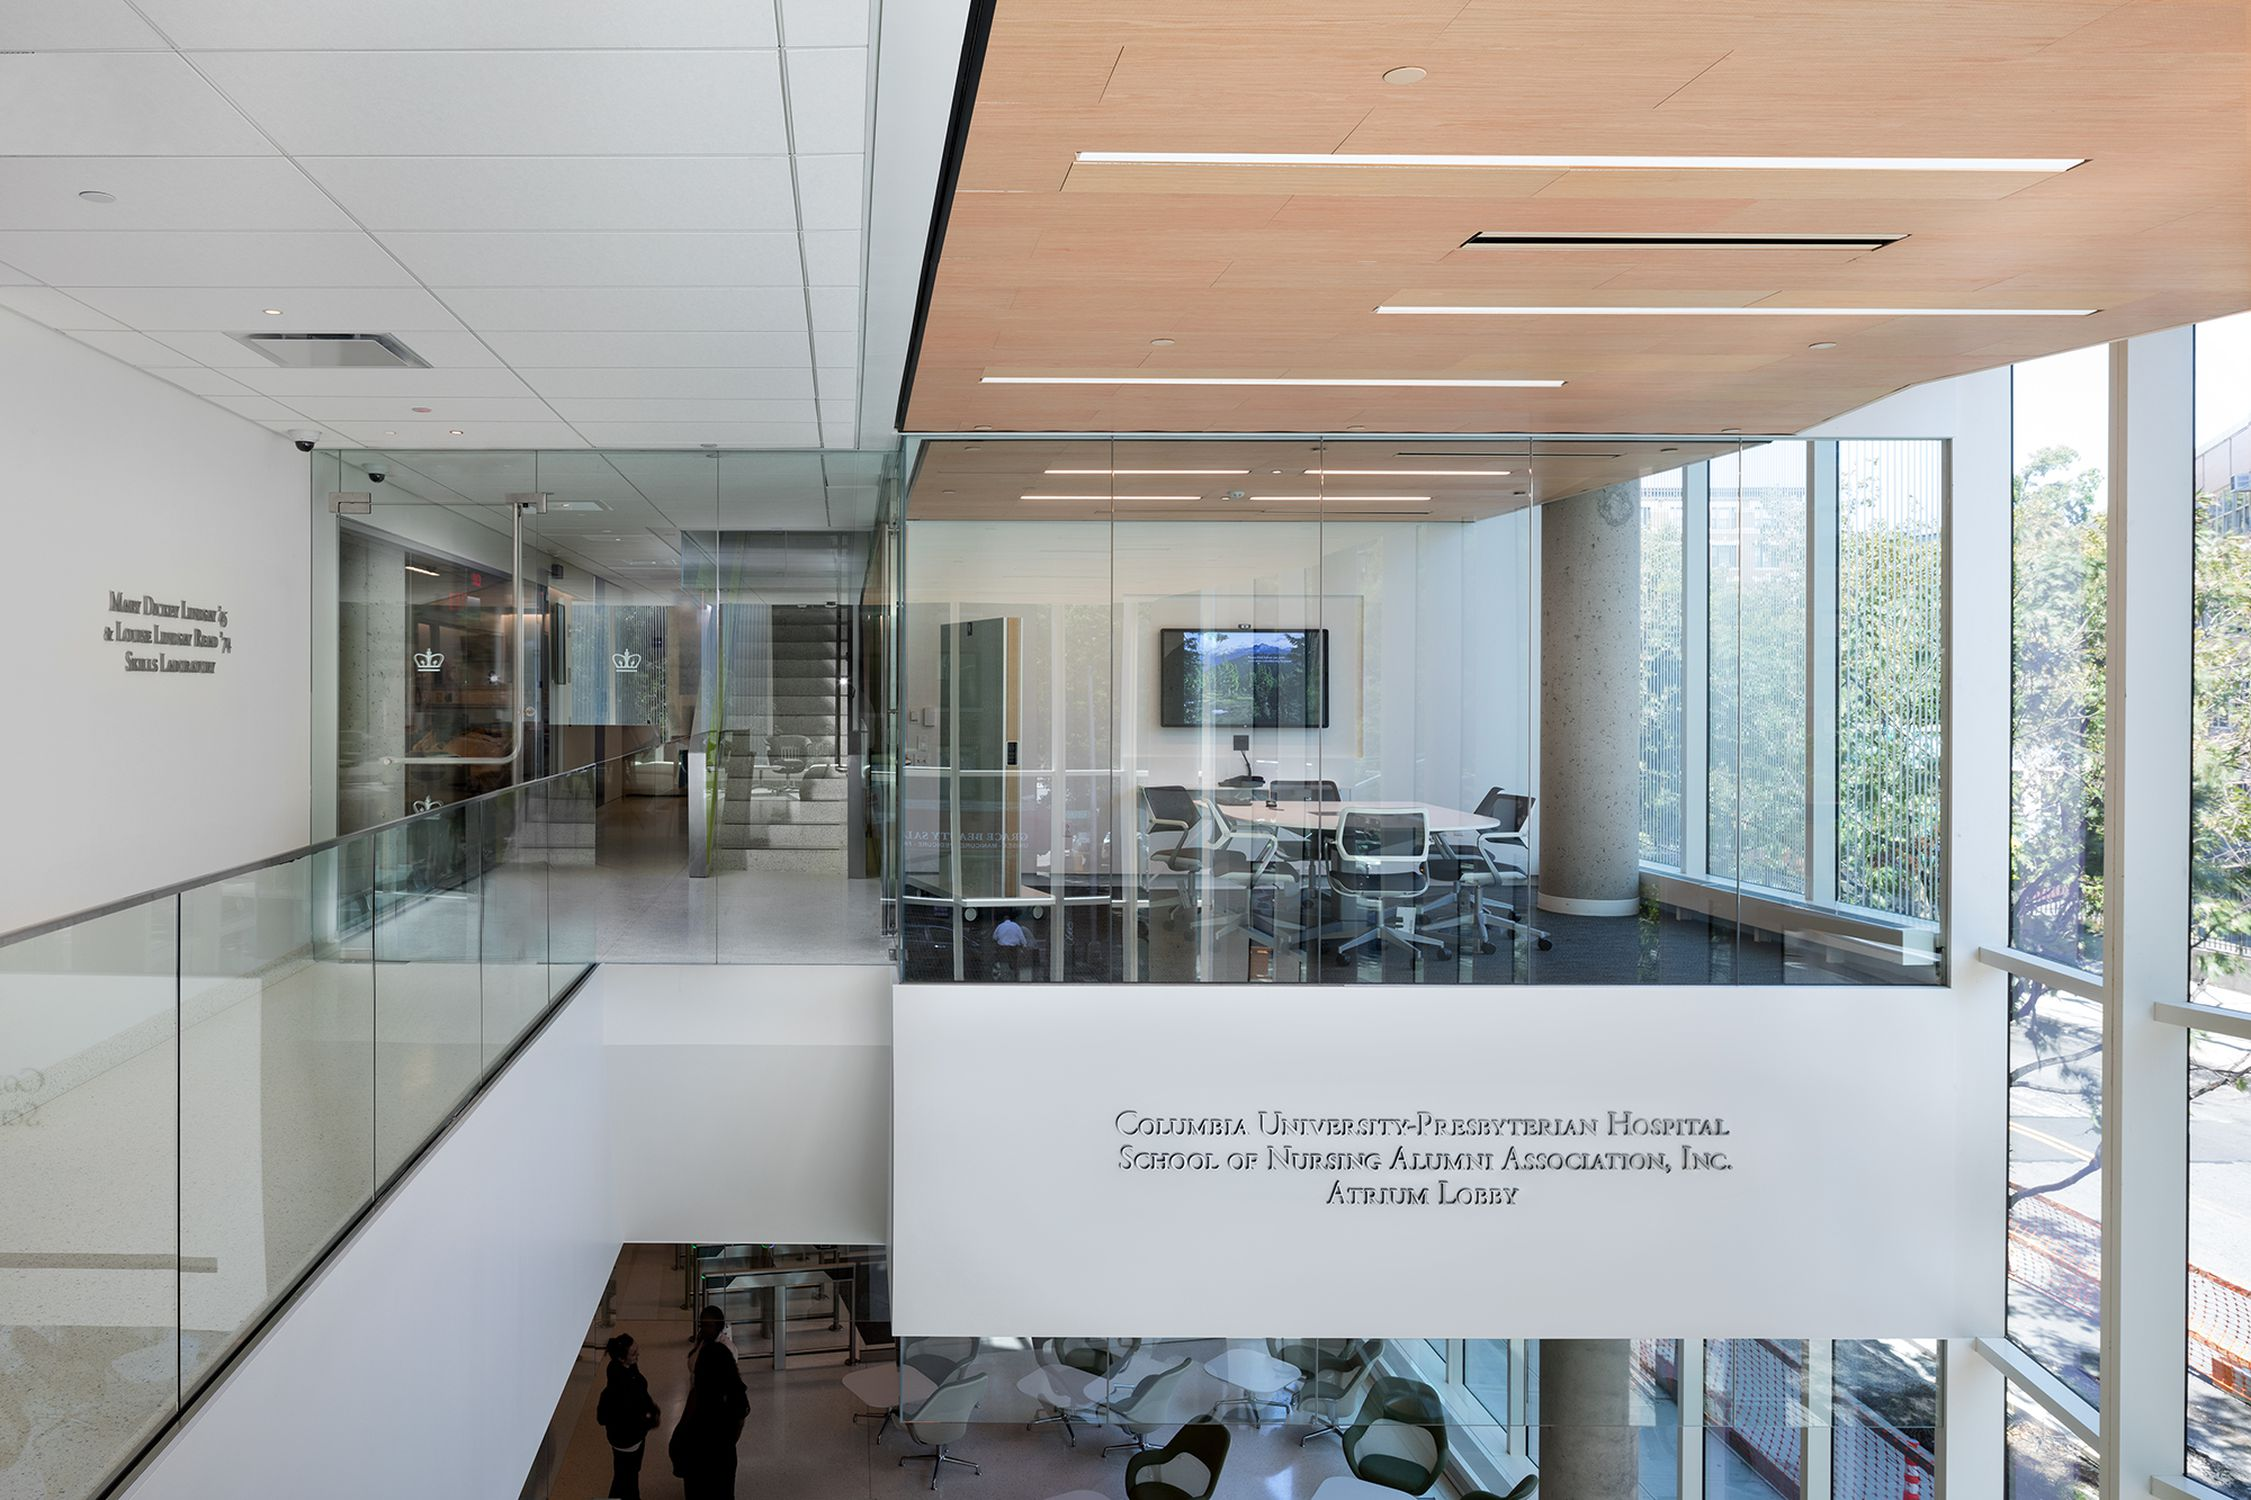 COLUMBIA SCHOOL OF NURSING | Entro Communications